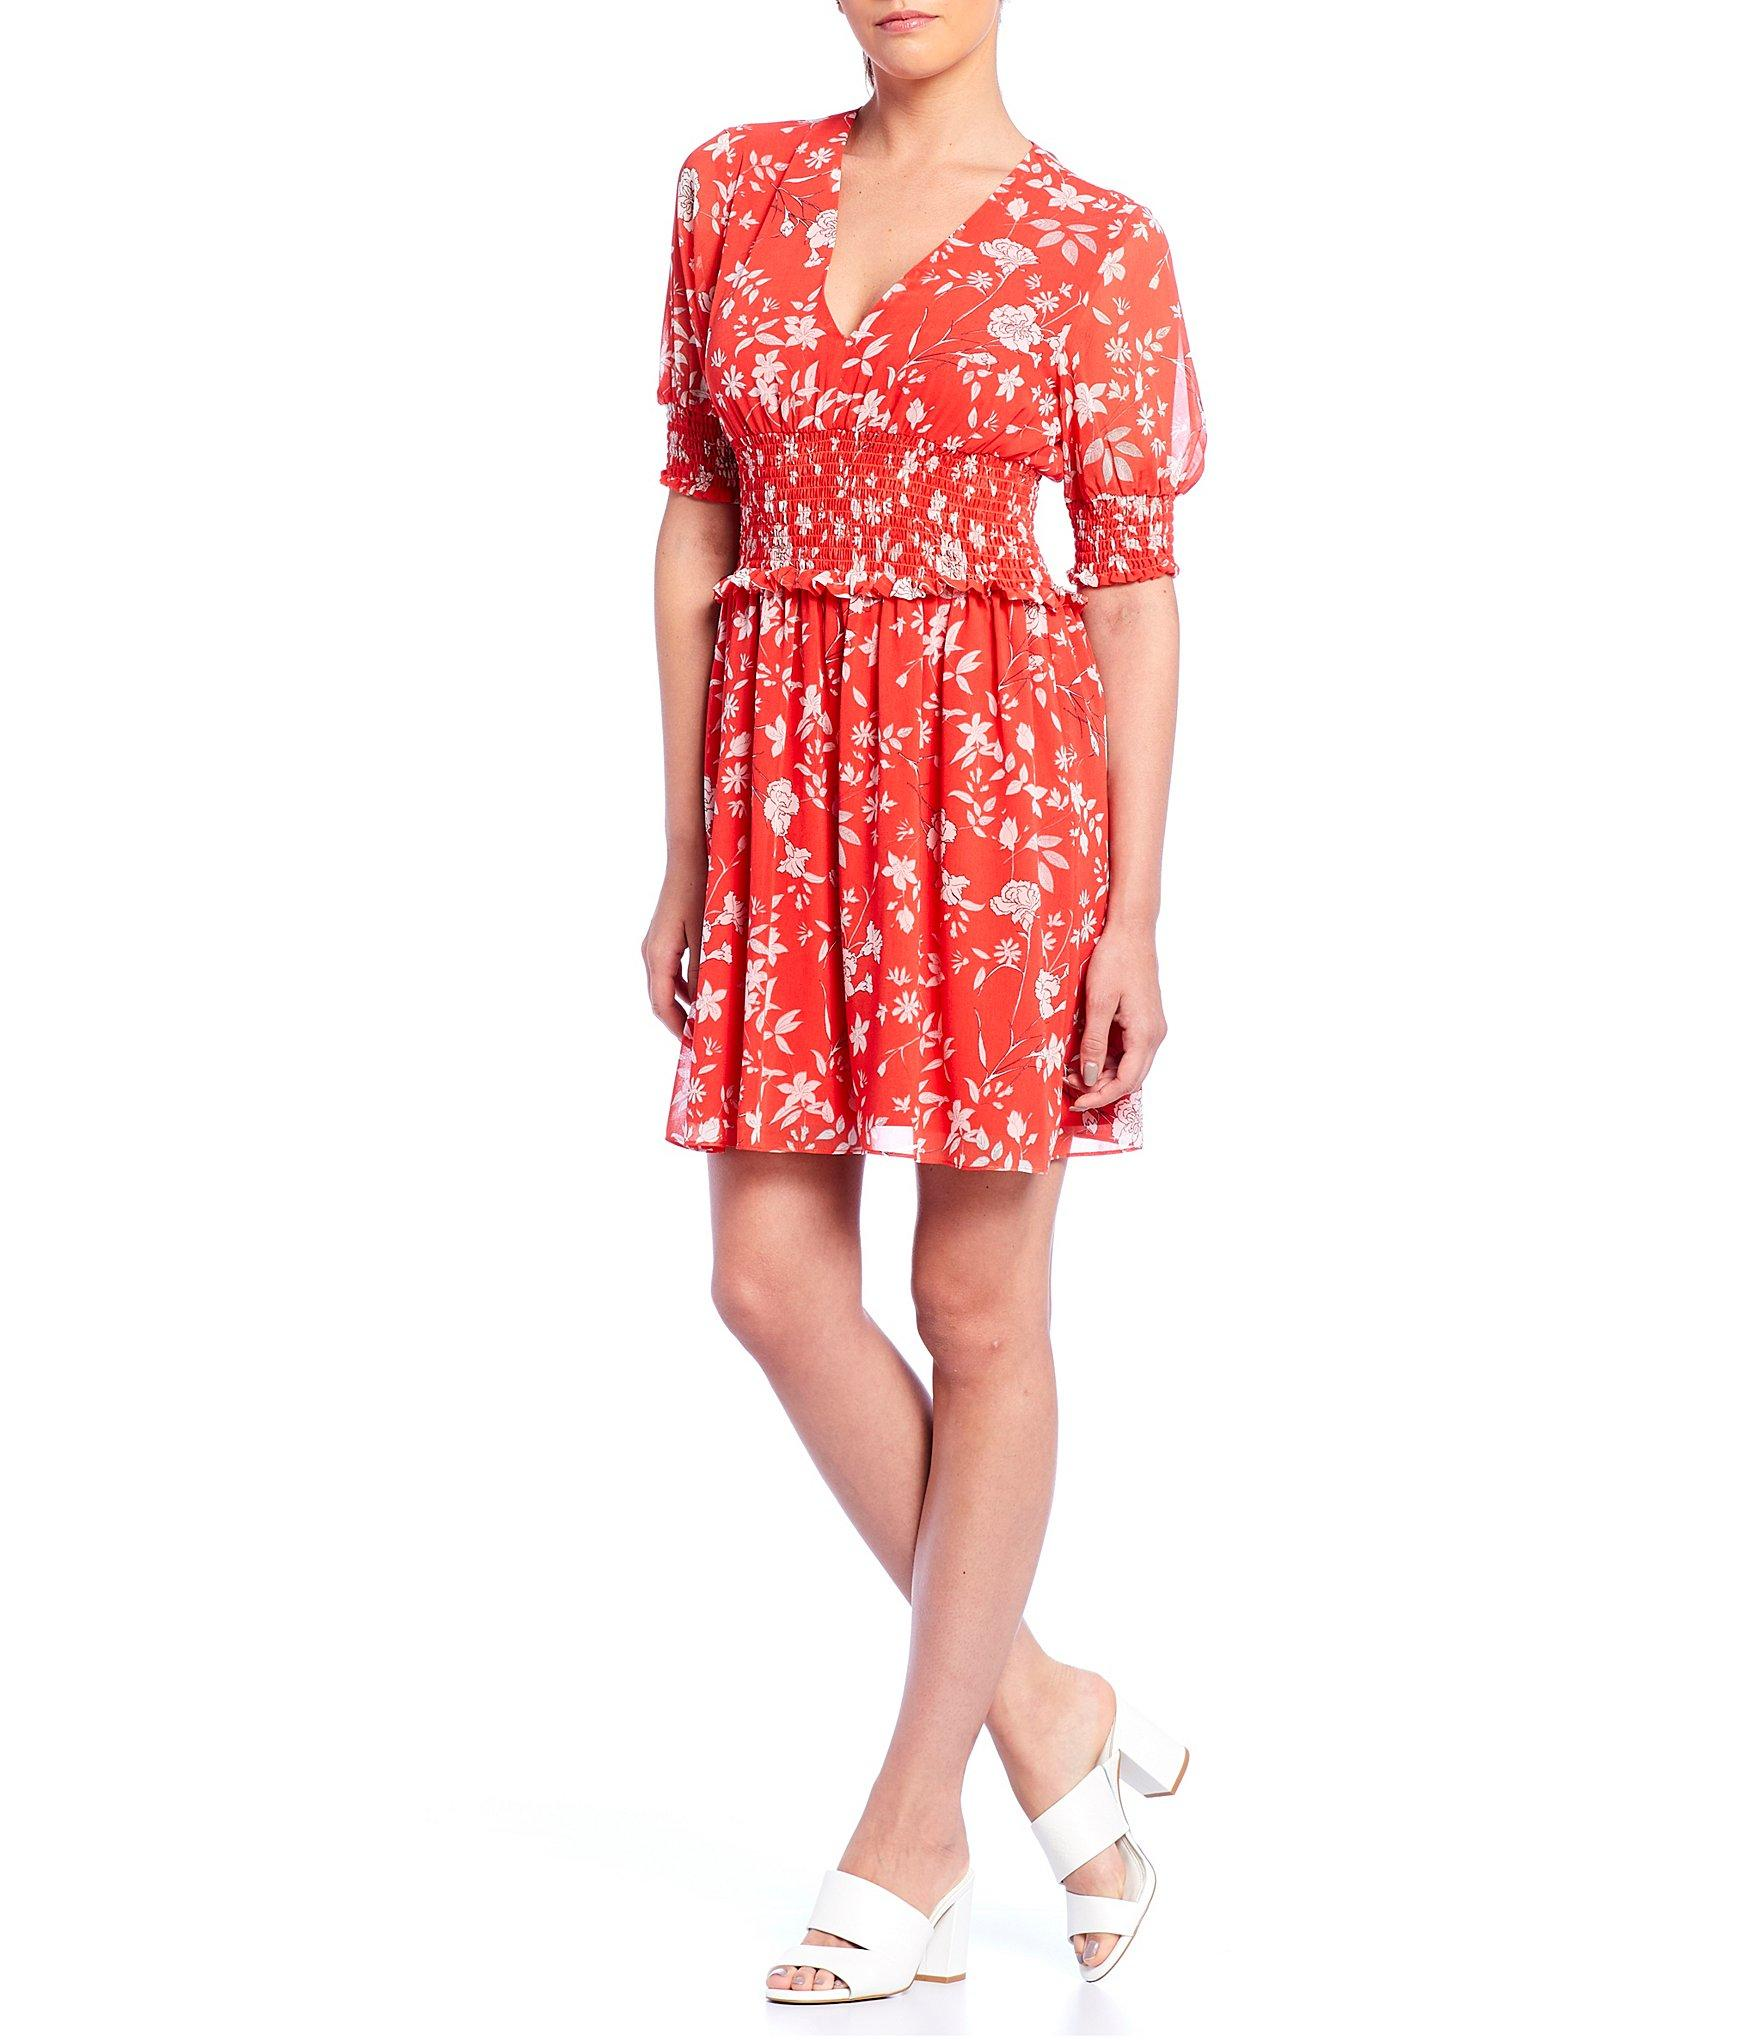 9635bde86d Lyst - Gianni Bini Callie Floral Print Smocked Dress in Red